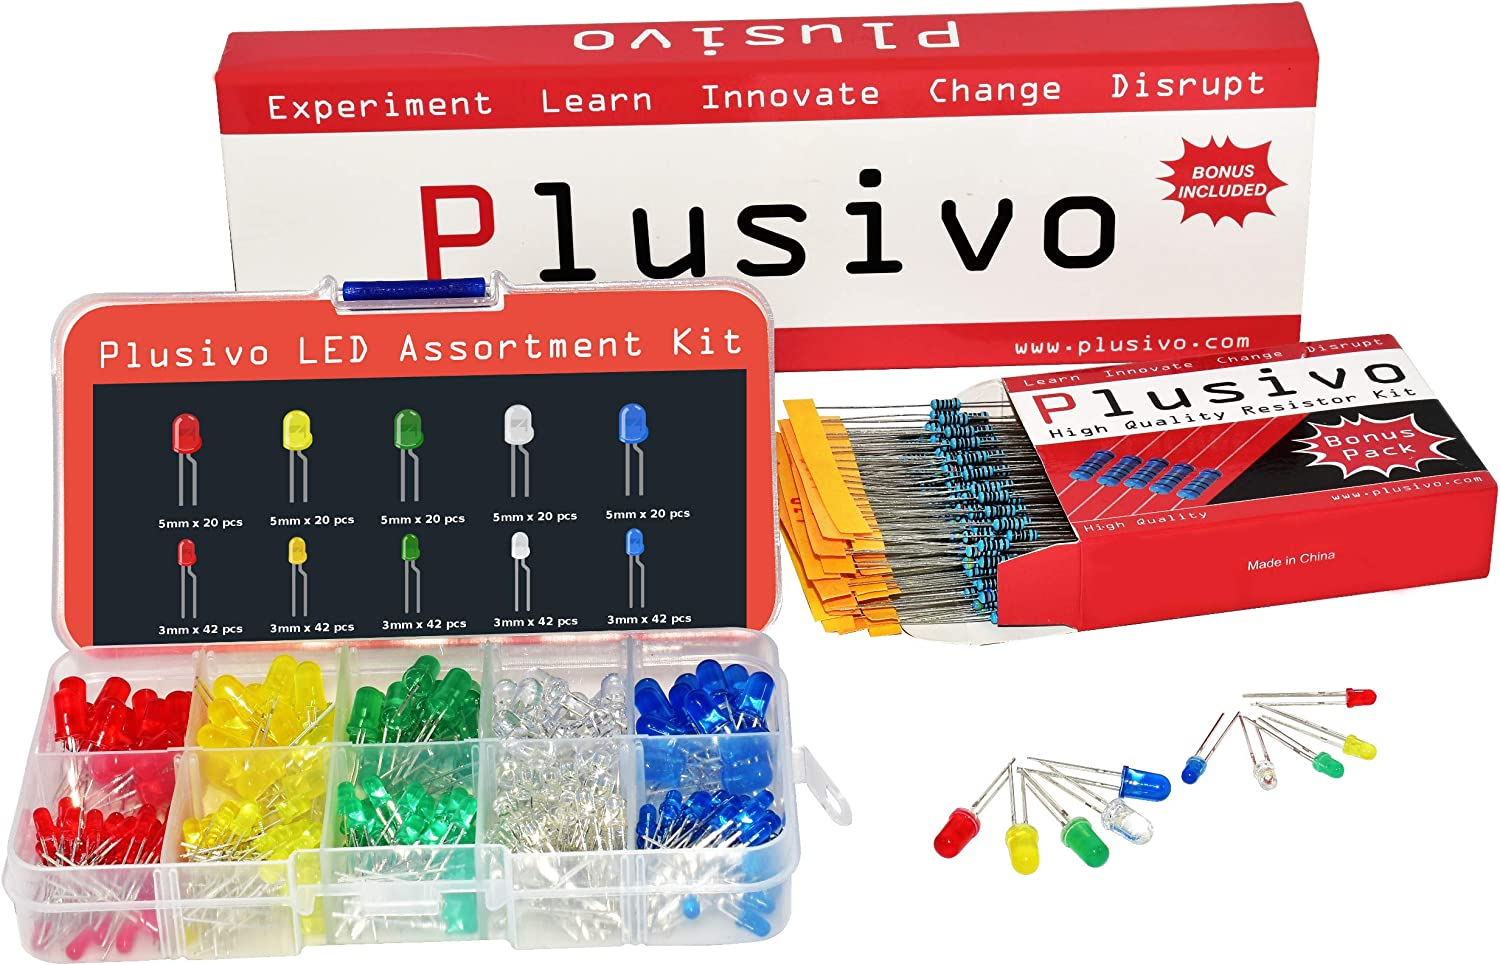 3mm and 5mm Diffused LED Light Emitting Diode Assortment Kit - Pack of Assorted Color Diffused LEDs (310pcs) and Resistors - Red, Yellow, Green, Blue and White LED Indicator Lights from Plusivo